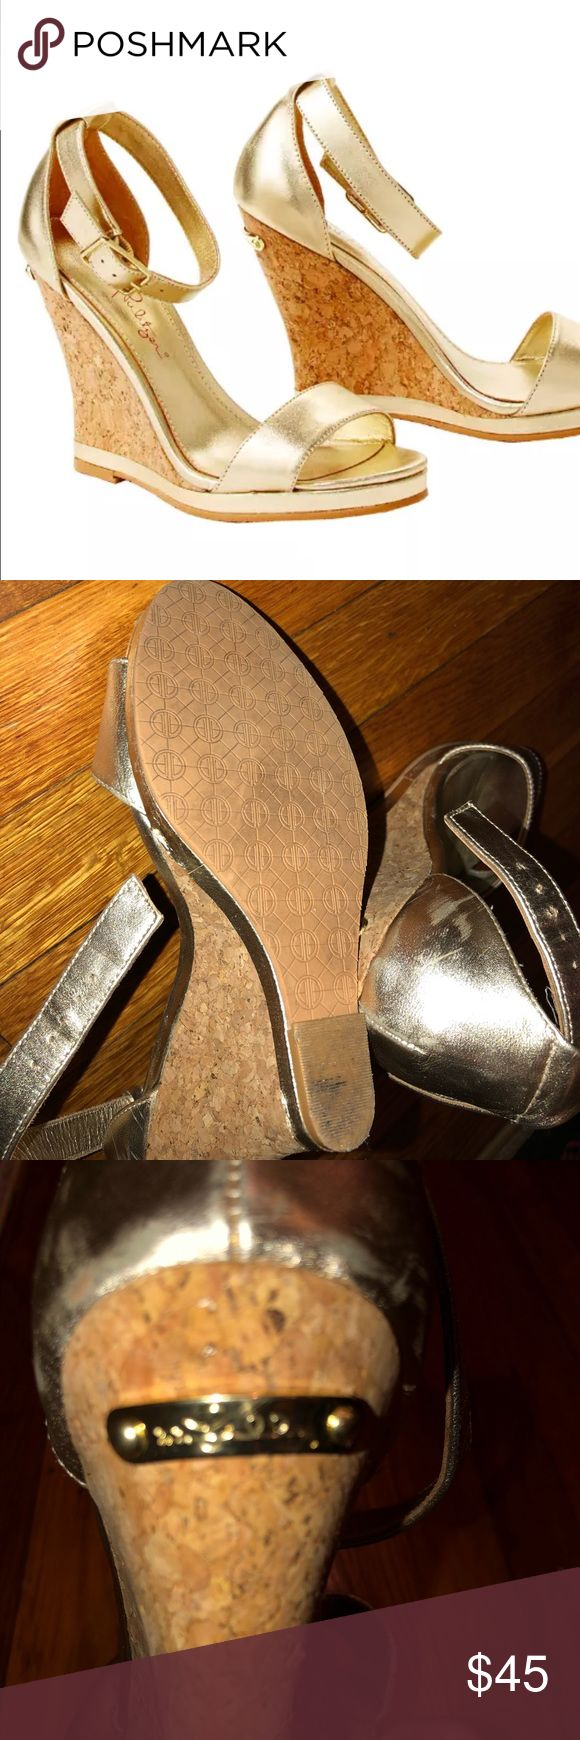 Lilly Pulitzer gold metallic wedge sandals These shoes are still in good condition. They show signs of being worn. They are coming from a smoke free house, pets free. Please ask any details before purchasing Lilly Pulitzer Shoes Wedges